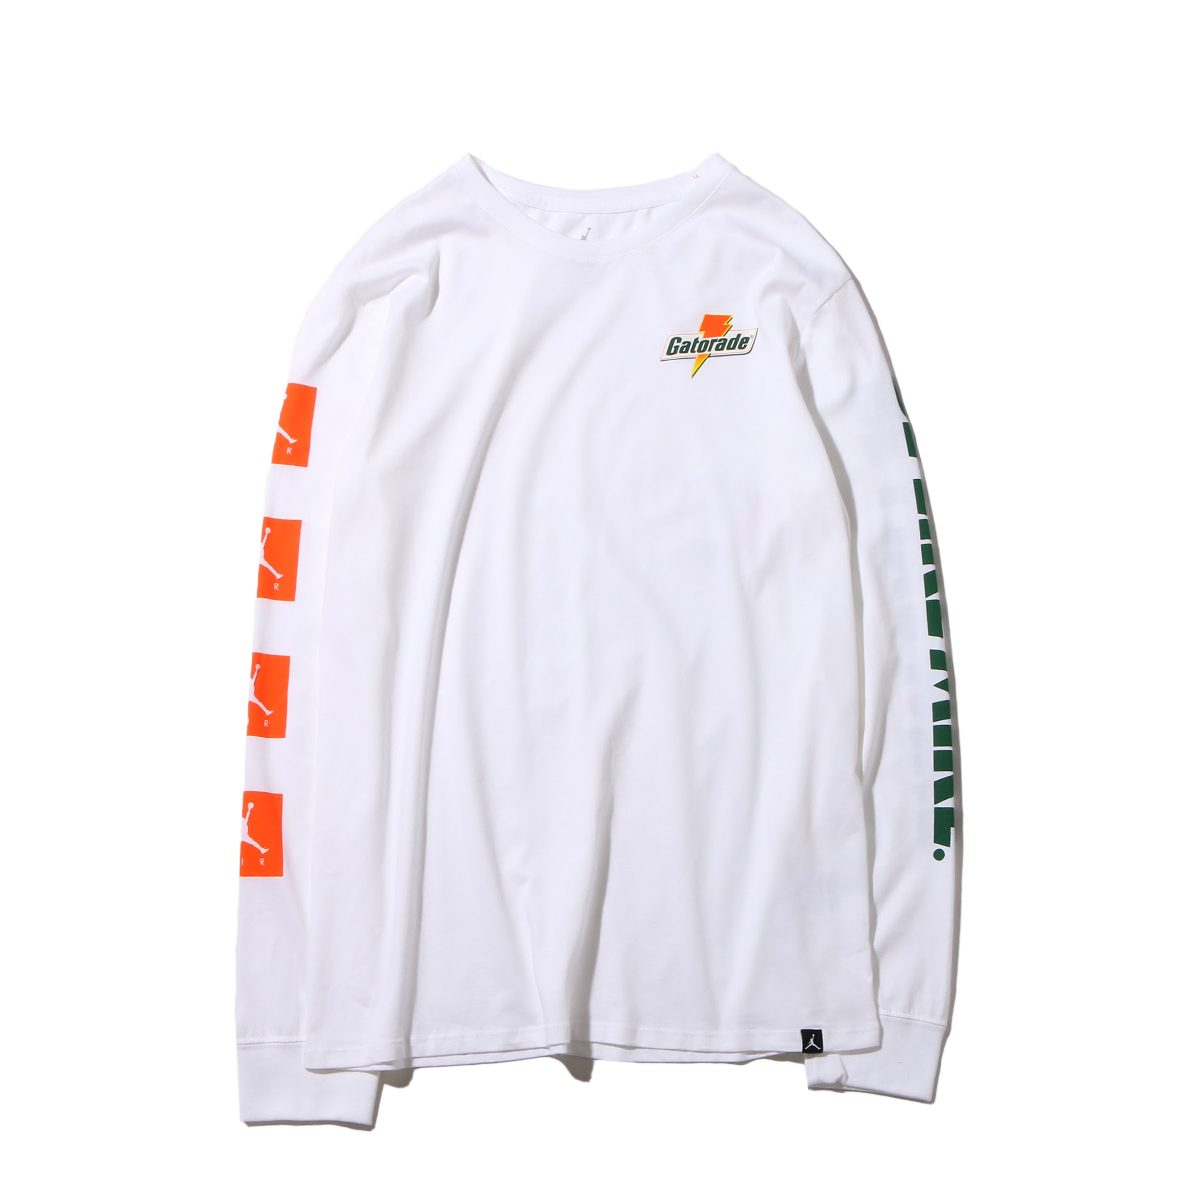 ee144037891b Crew neck L S T-shirt of the cotton jersey material adoption. It is graphic  of